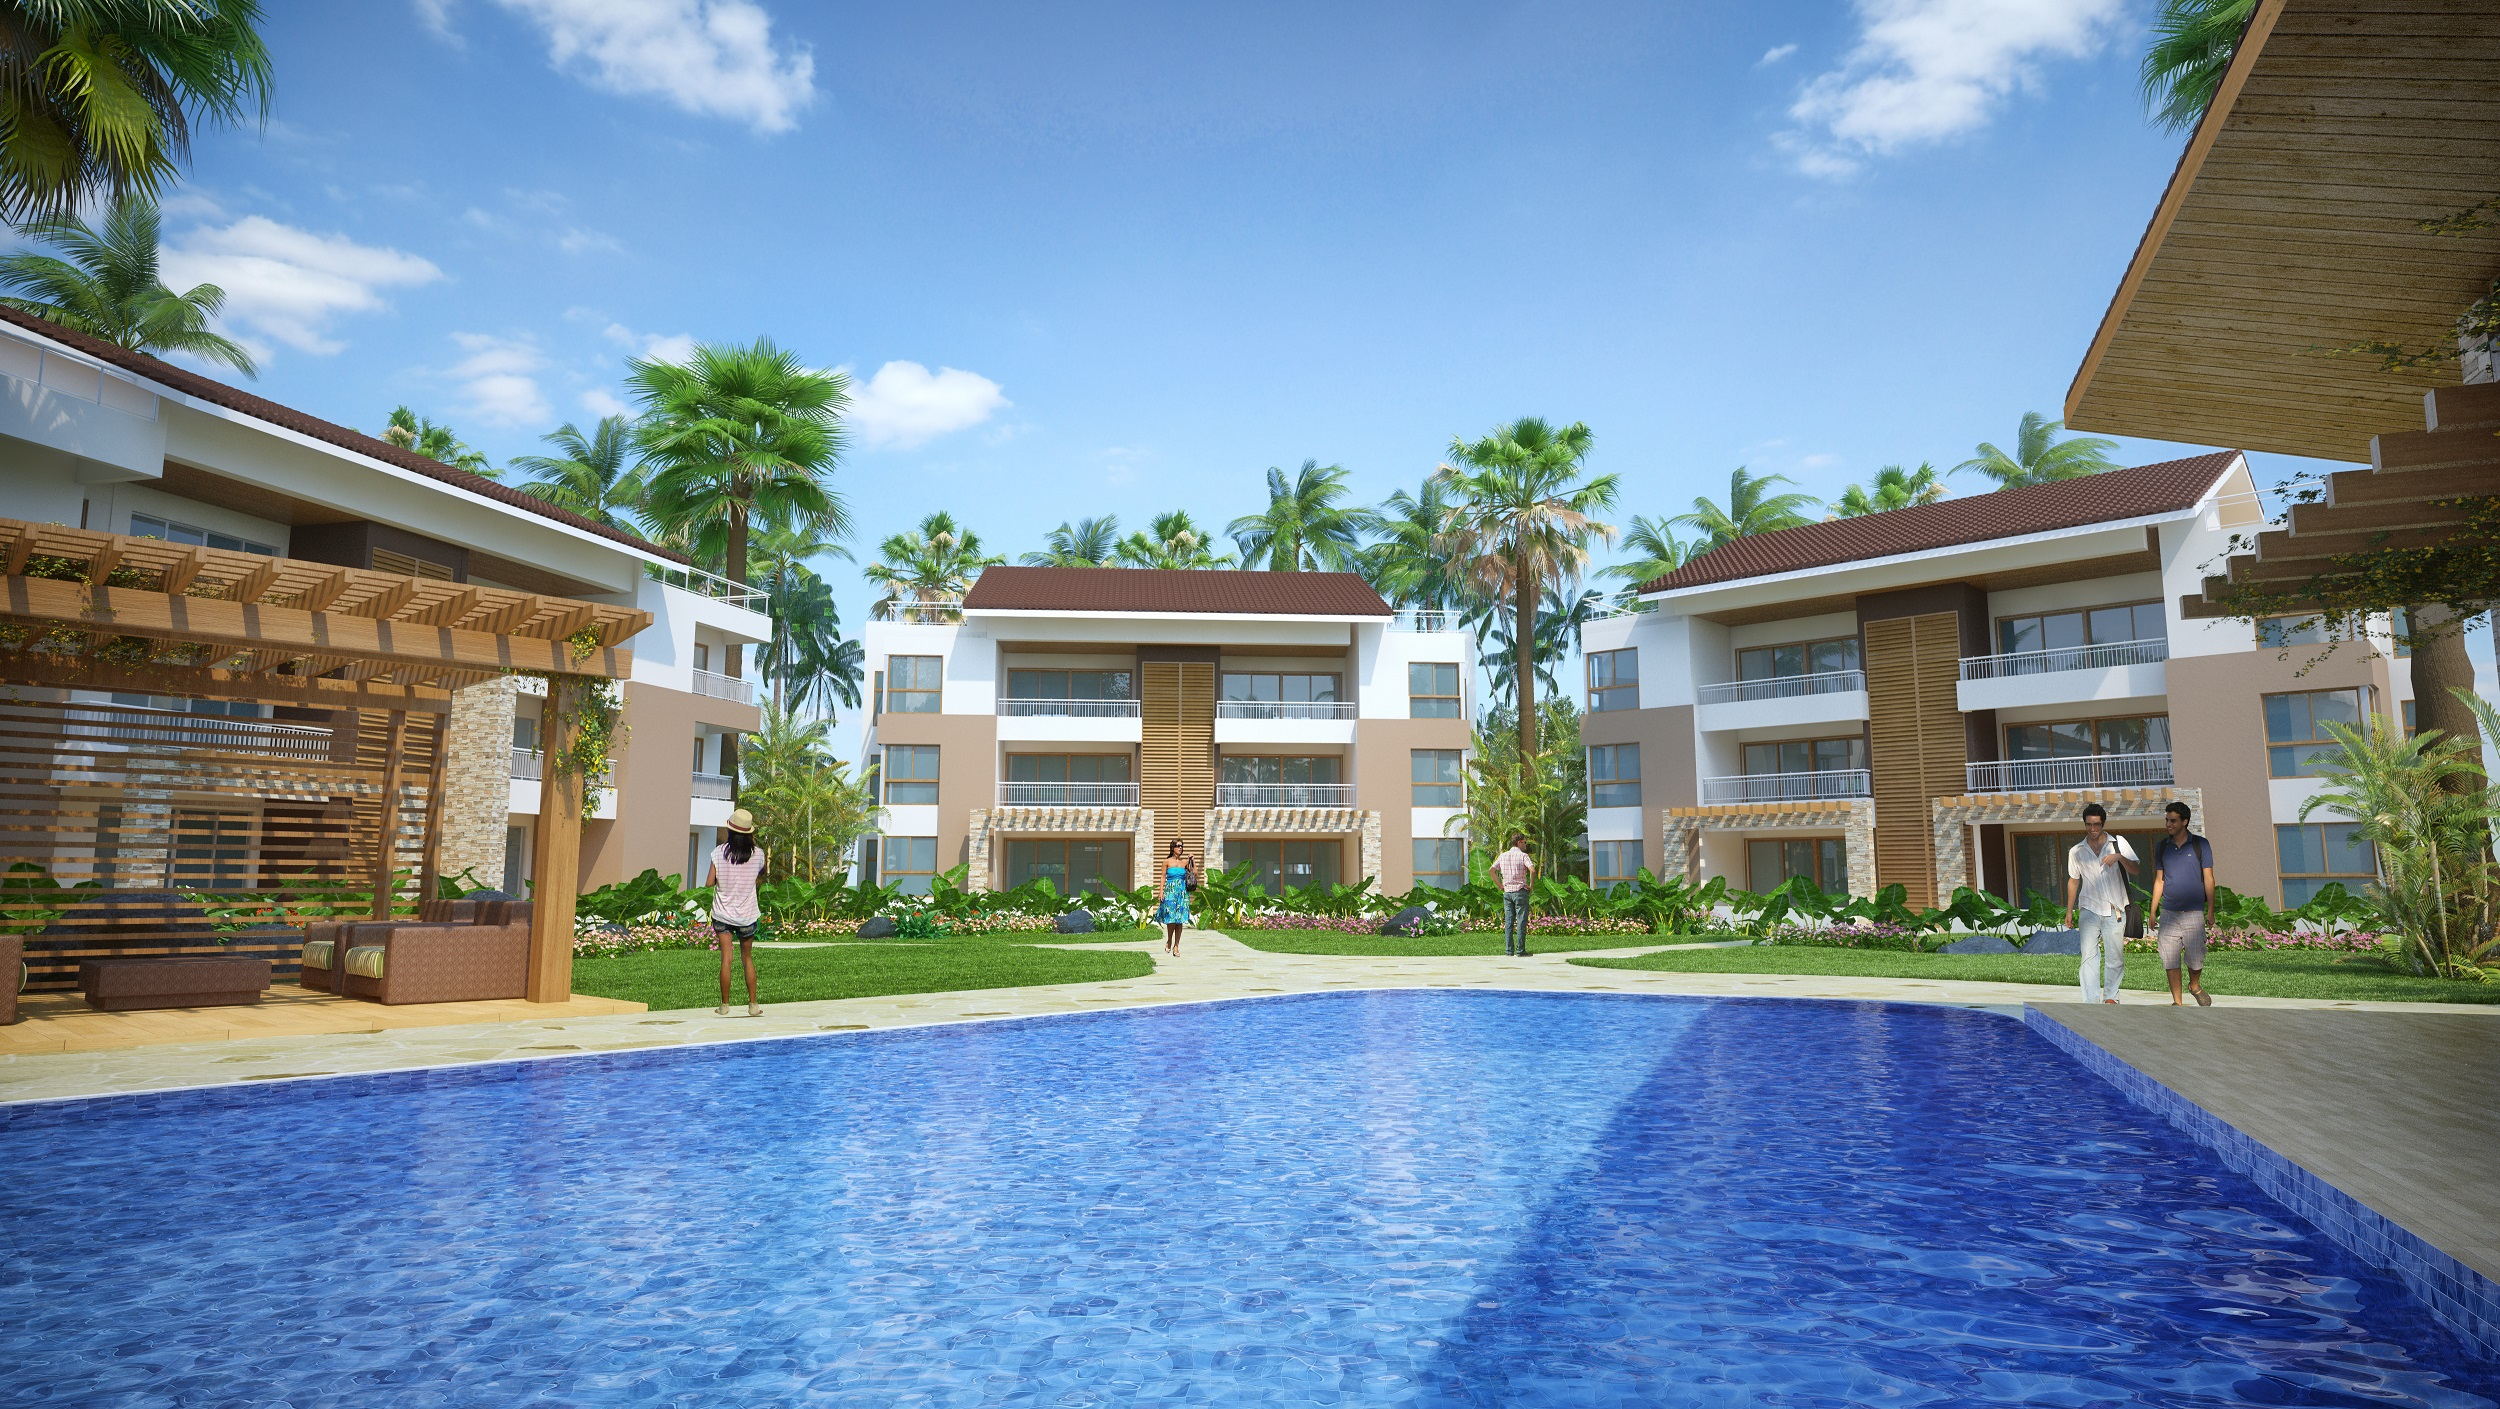 A454LT - 2 Bed 2.5 Bath condo's in a beachfront residence - starting from $198,000 USD